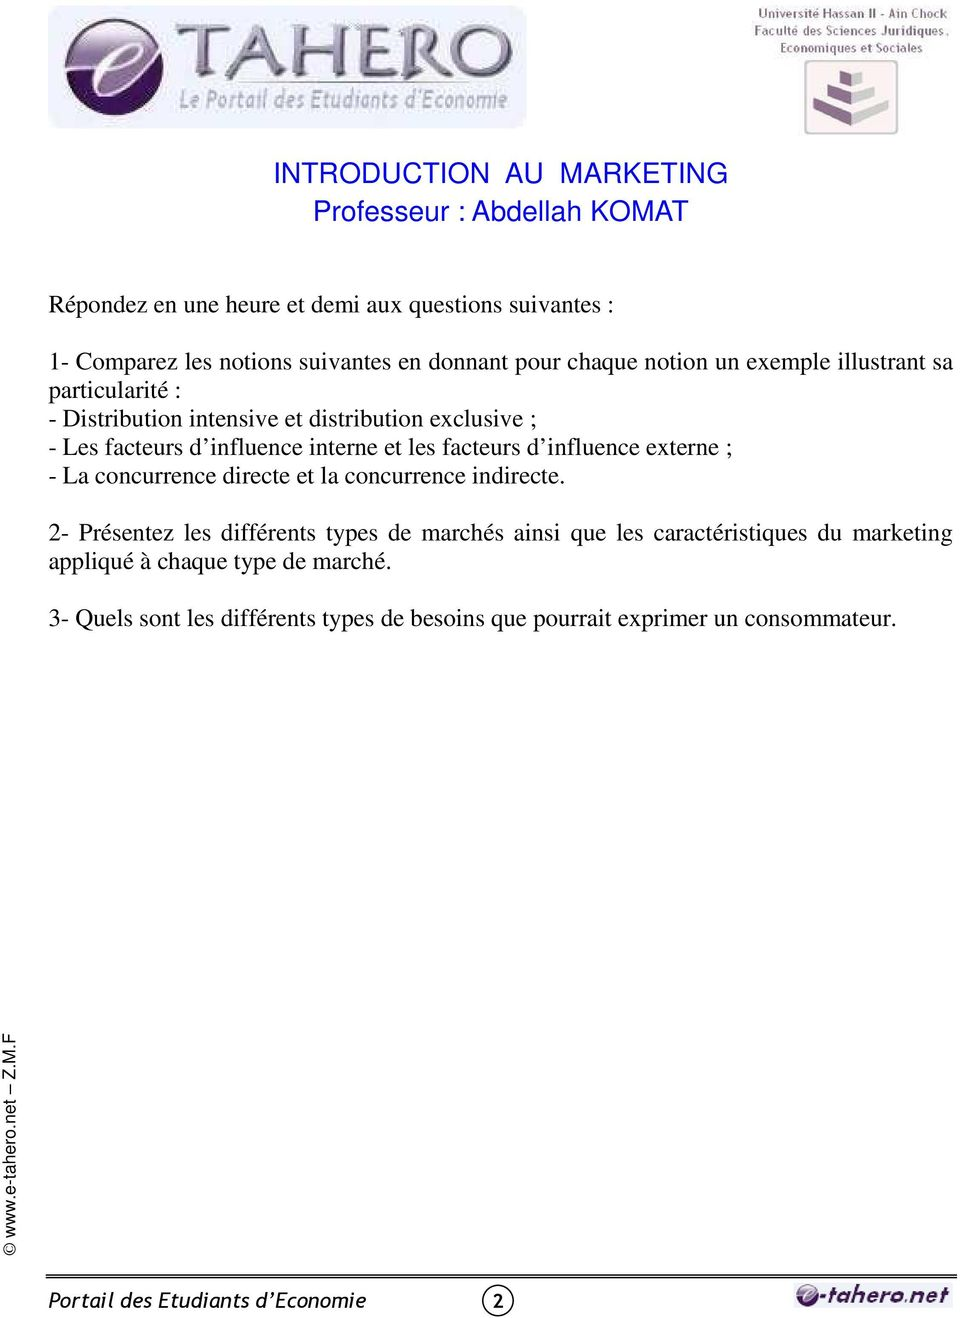 Introduction Au Marketing Professeur Abdellah Komat Pdf